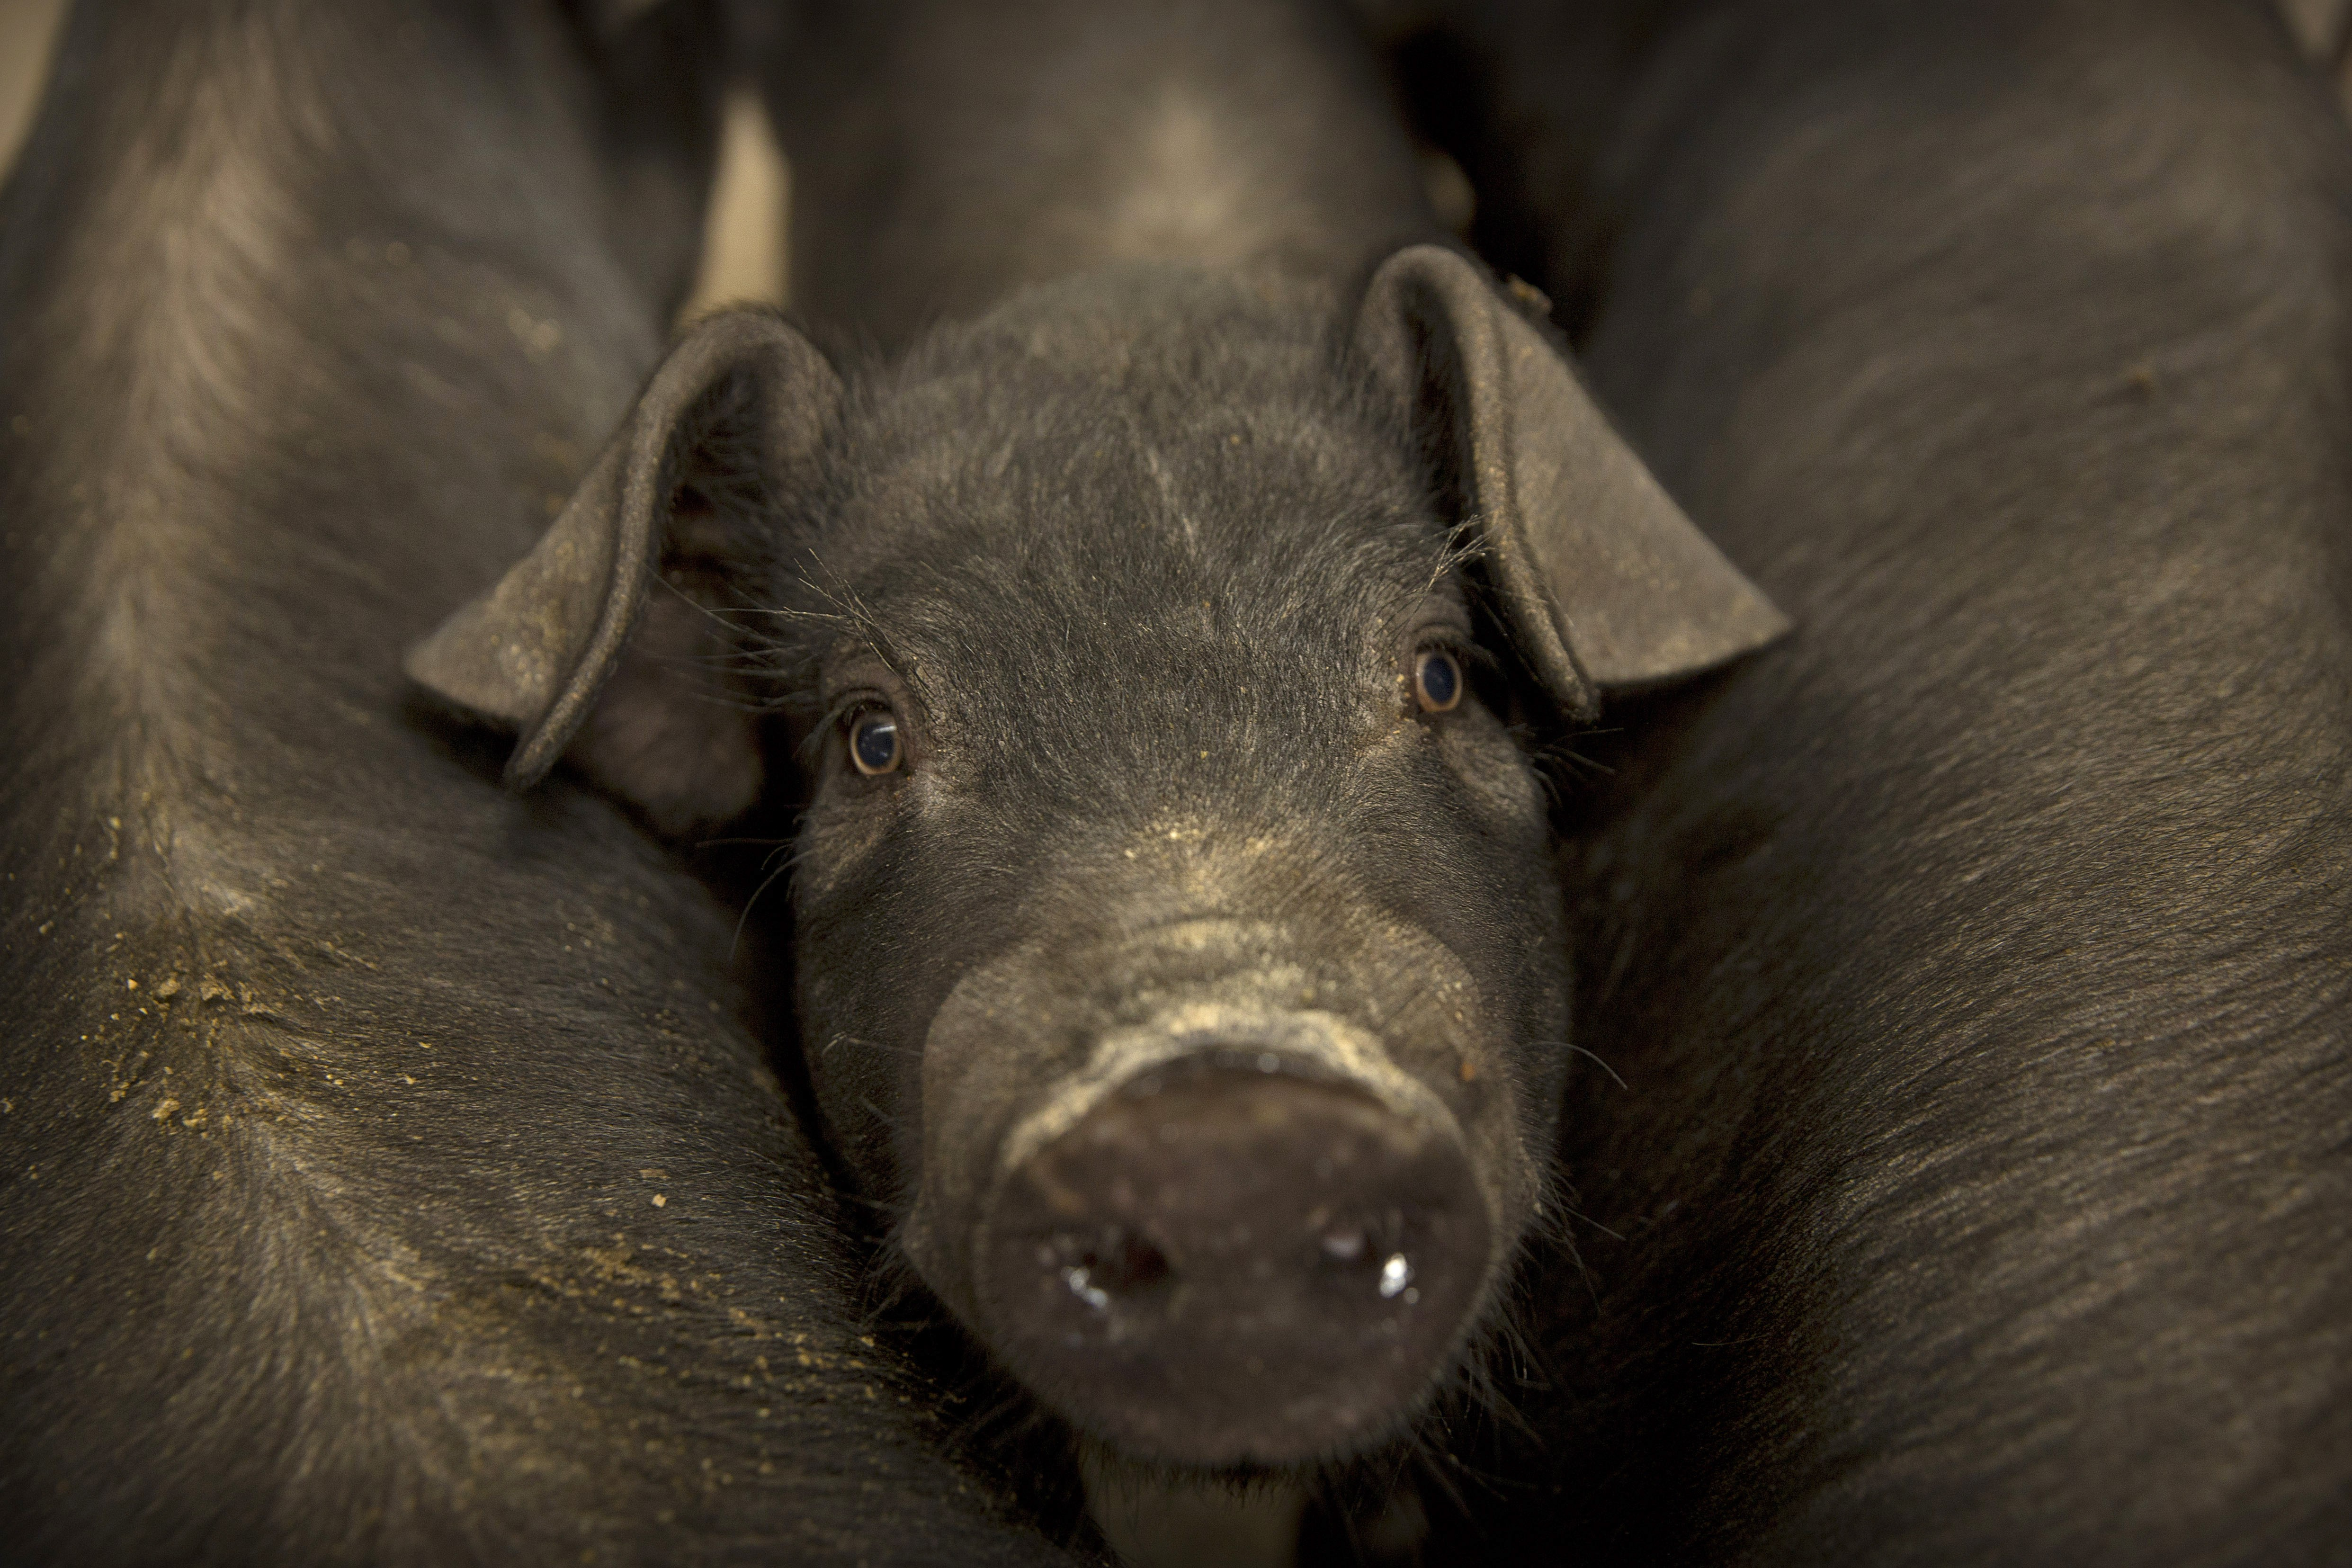 Chinese pig' remark lands UBS in trouble as state firm excludes